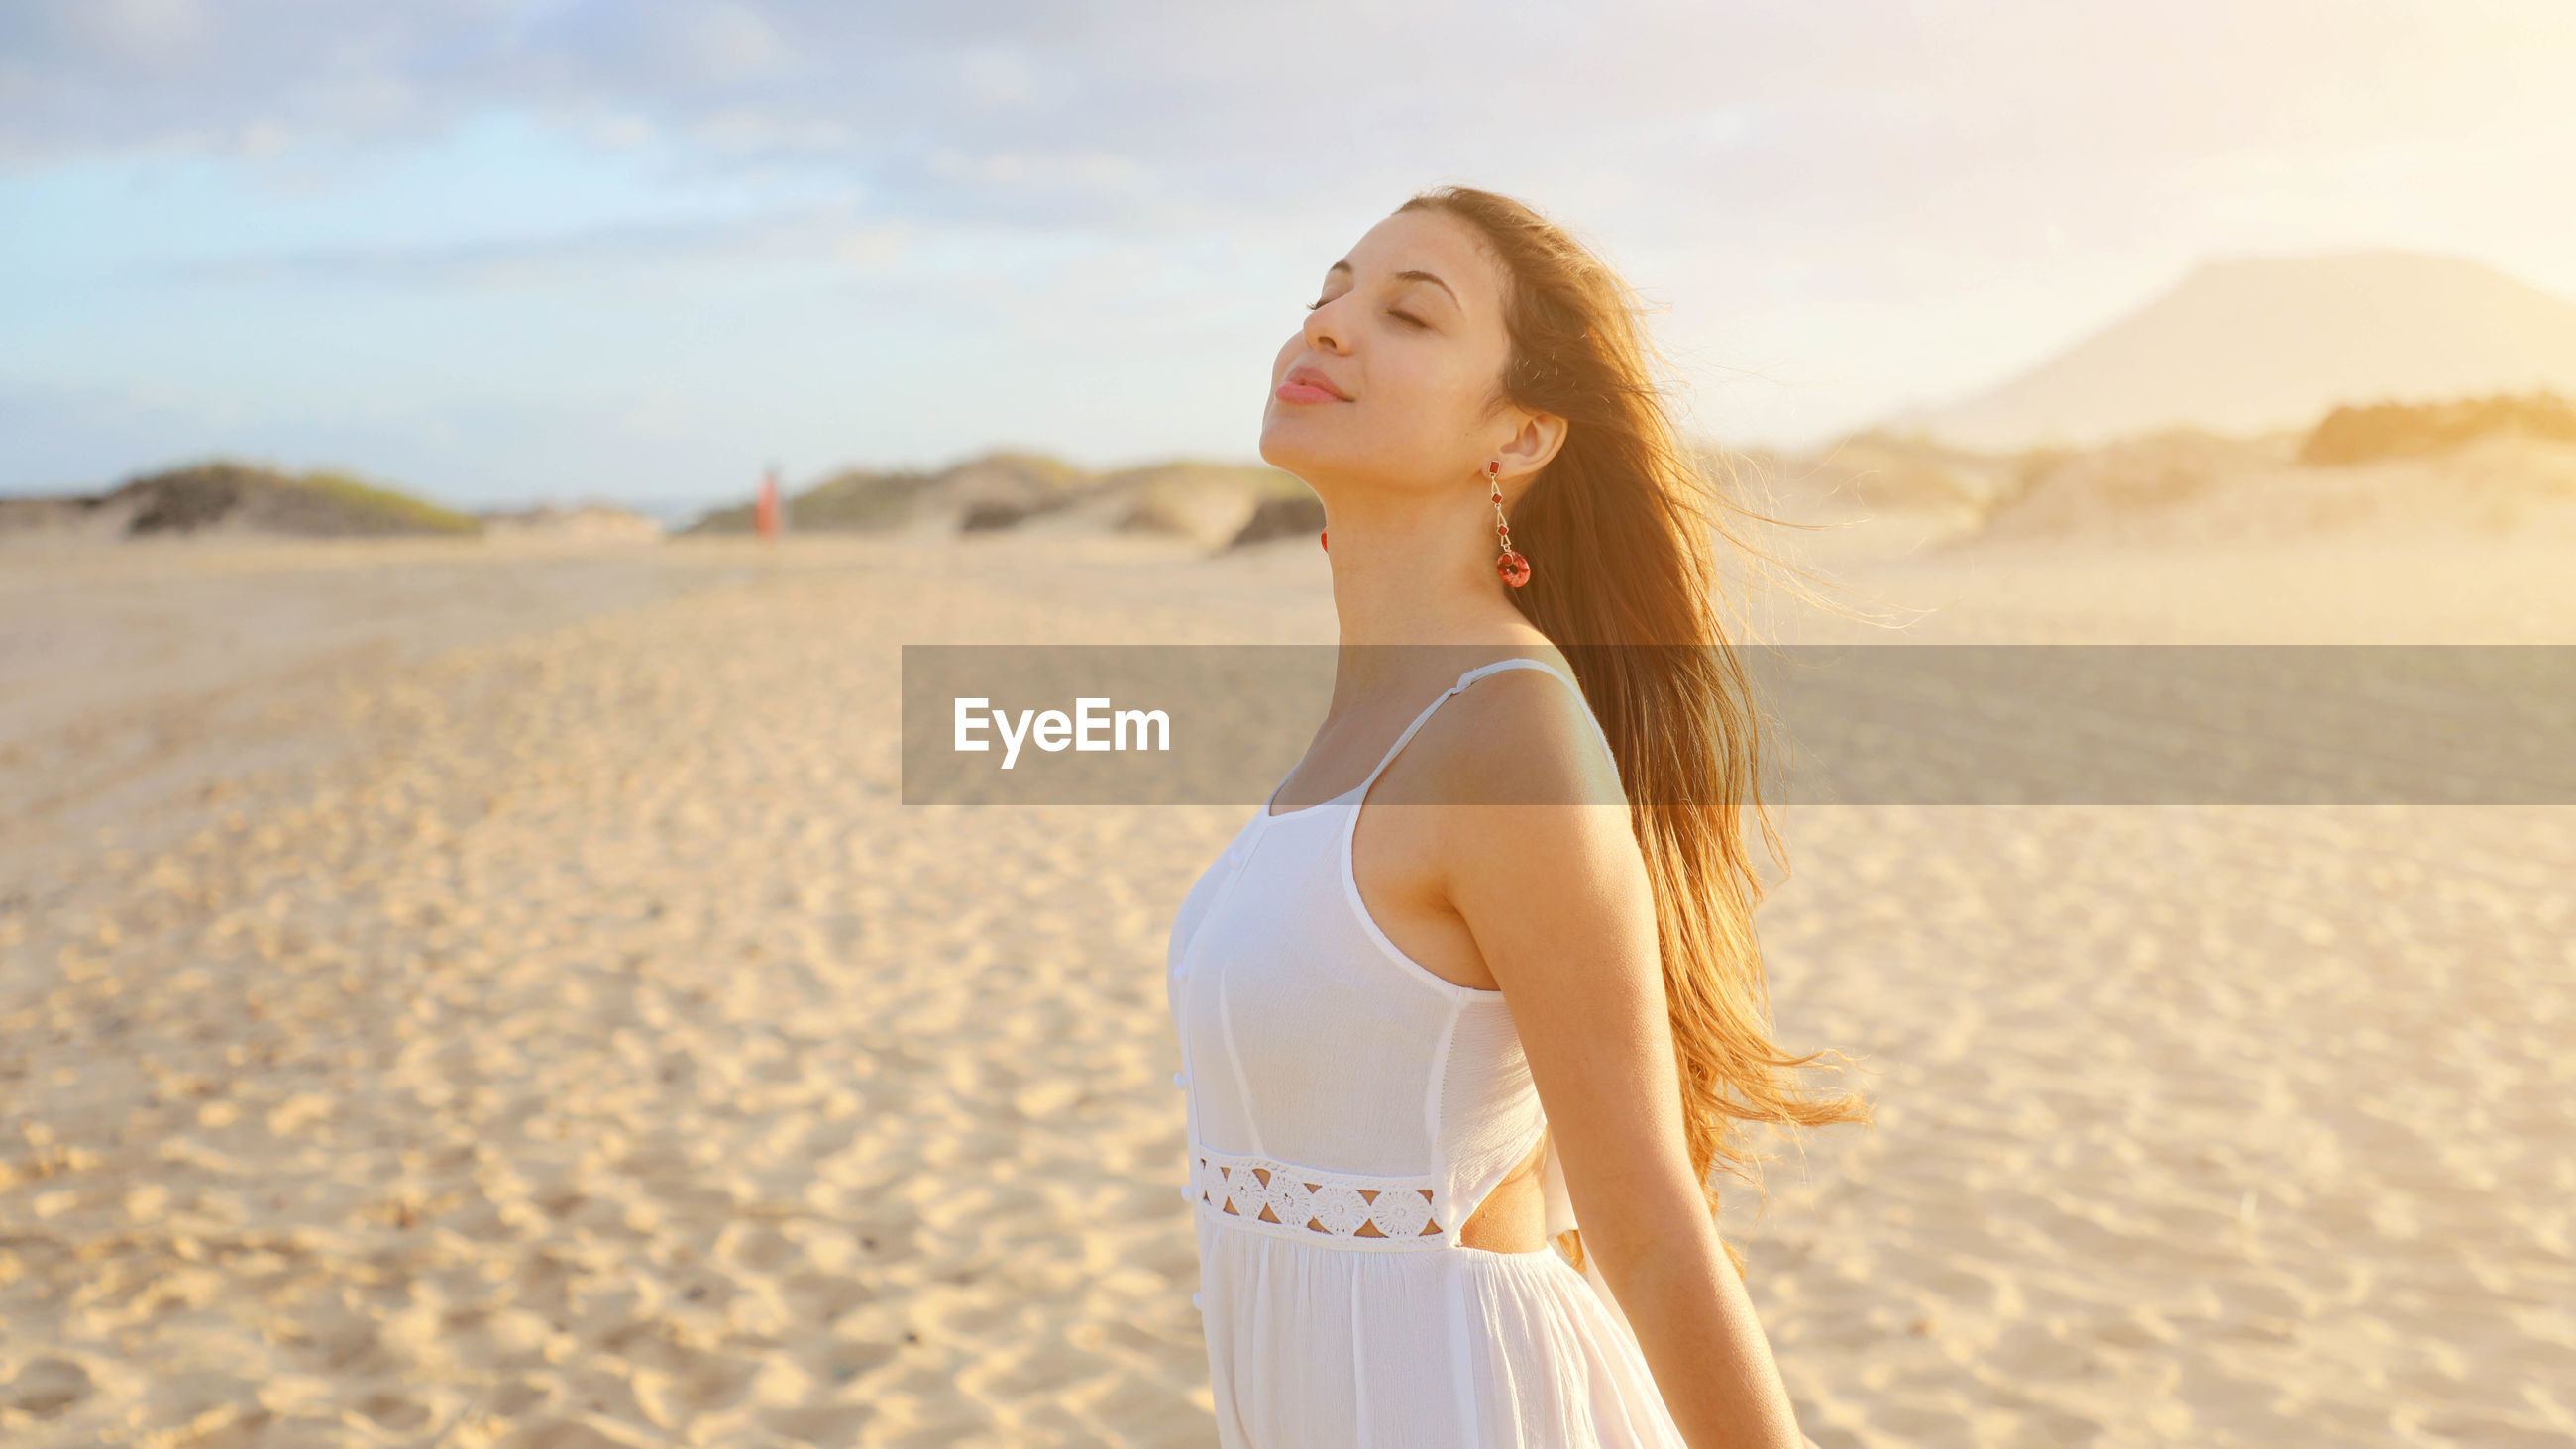 Smiling young woman with eyes closed standing on sand at desert